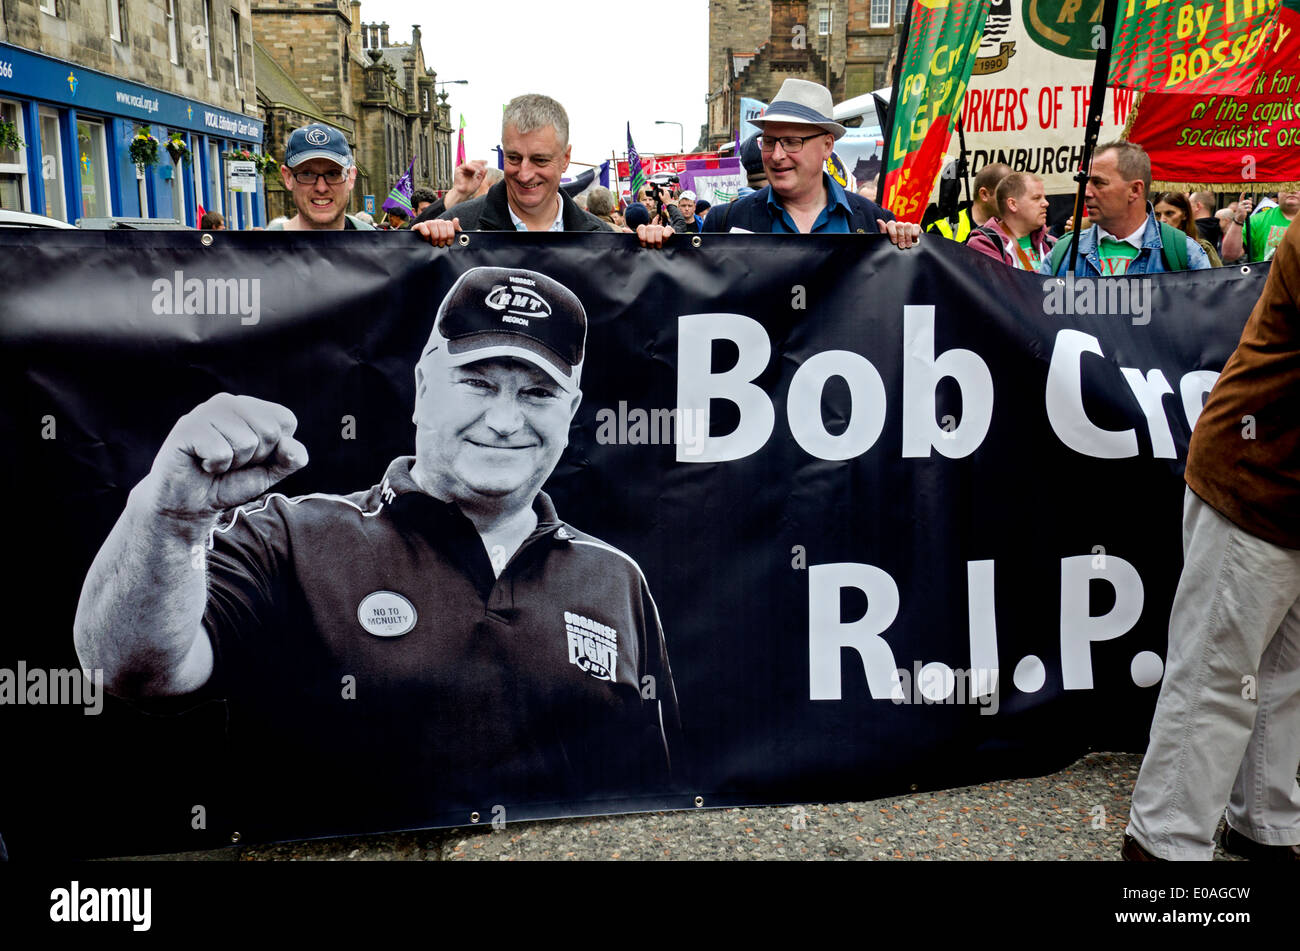 Members of the RMT union attend the May Day rally in Edinburgh with a banner depicting the late Bob Crow. - Stock Image